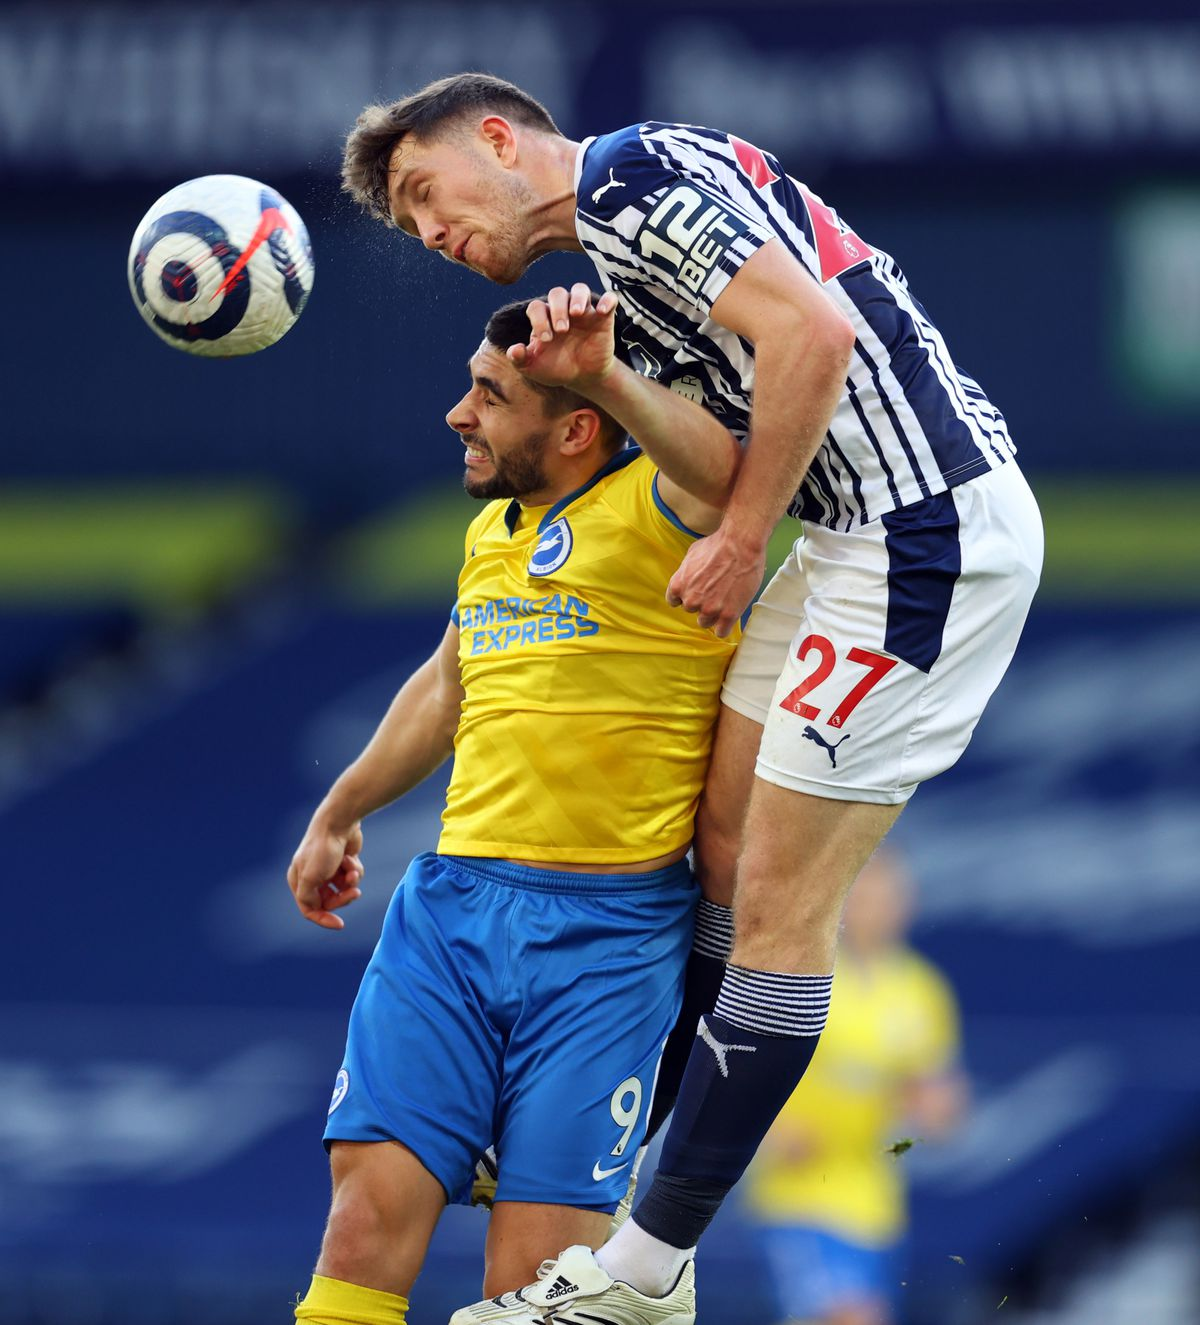 West Bromwich Albion's Dara O'Shea (right) and Brighton and Hove Albion's Neal Maupay